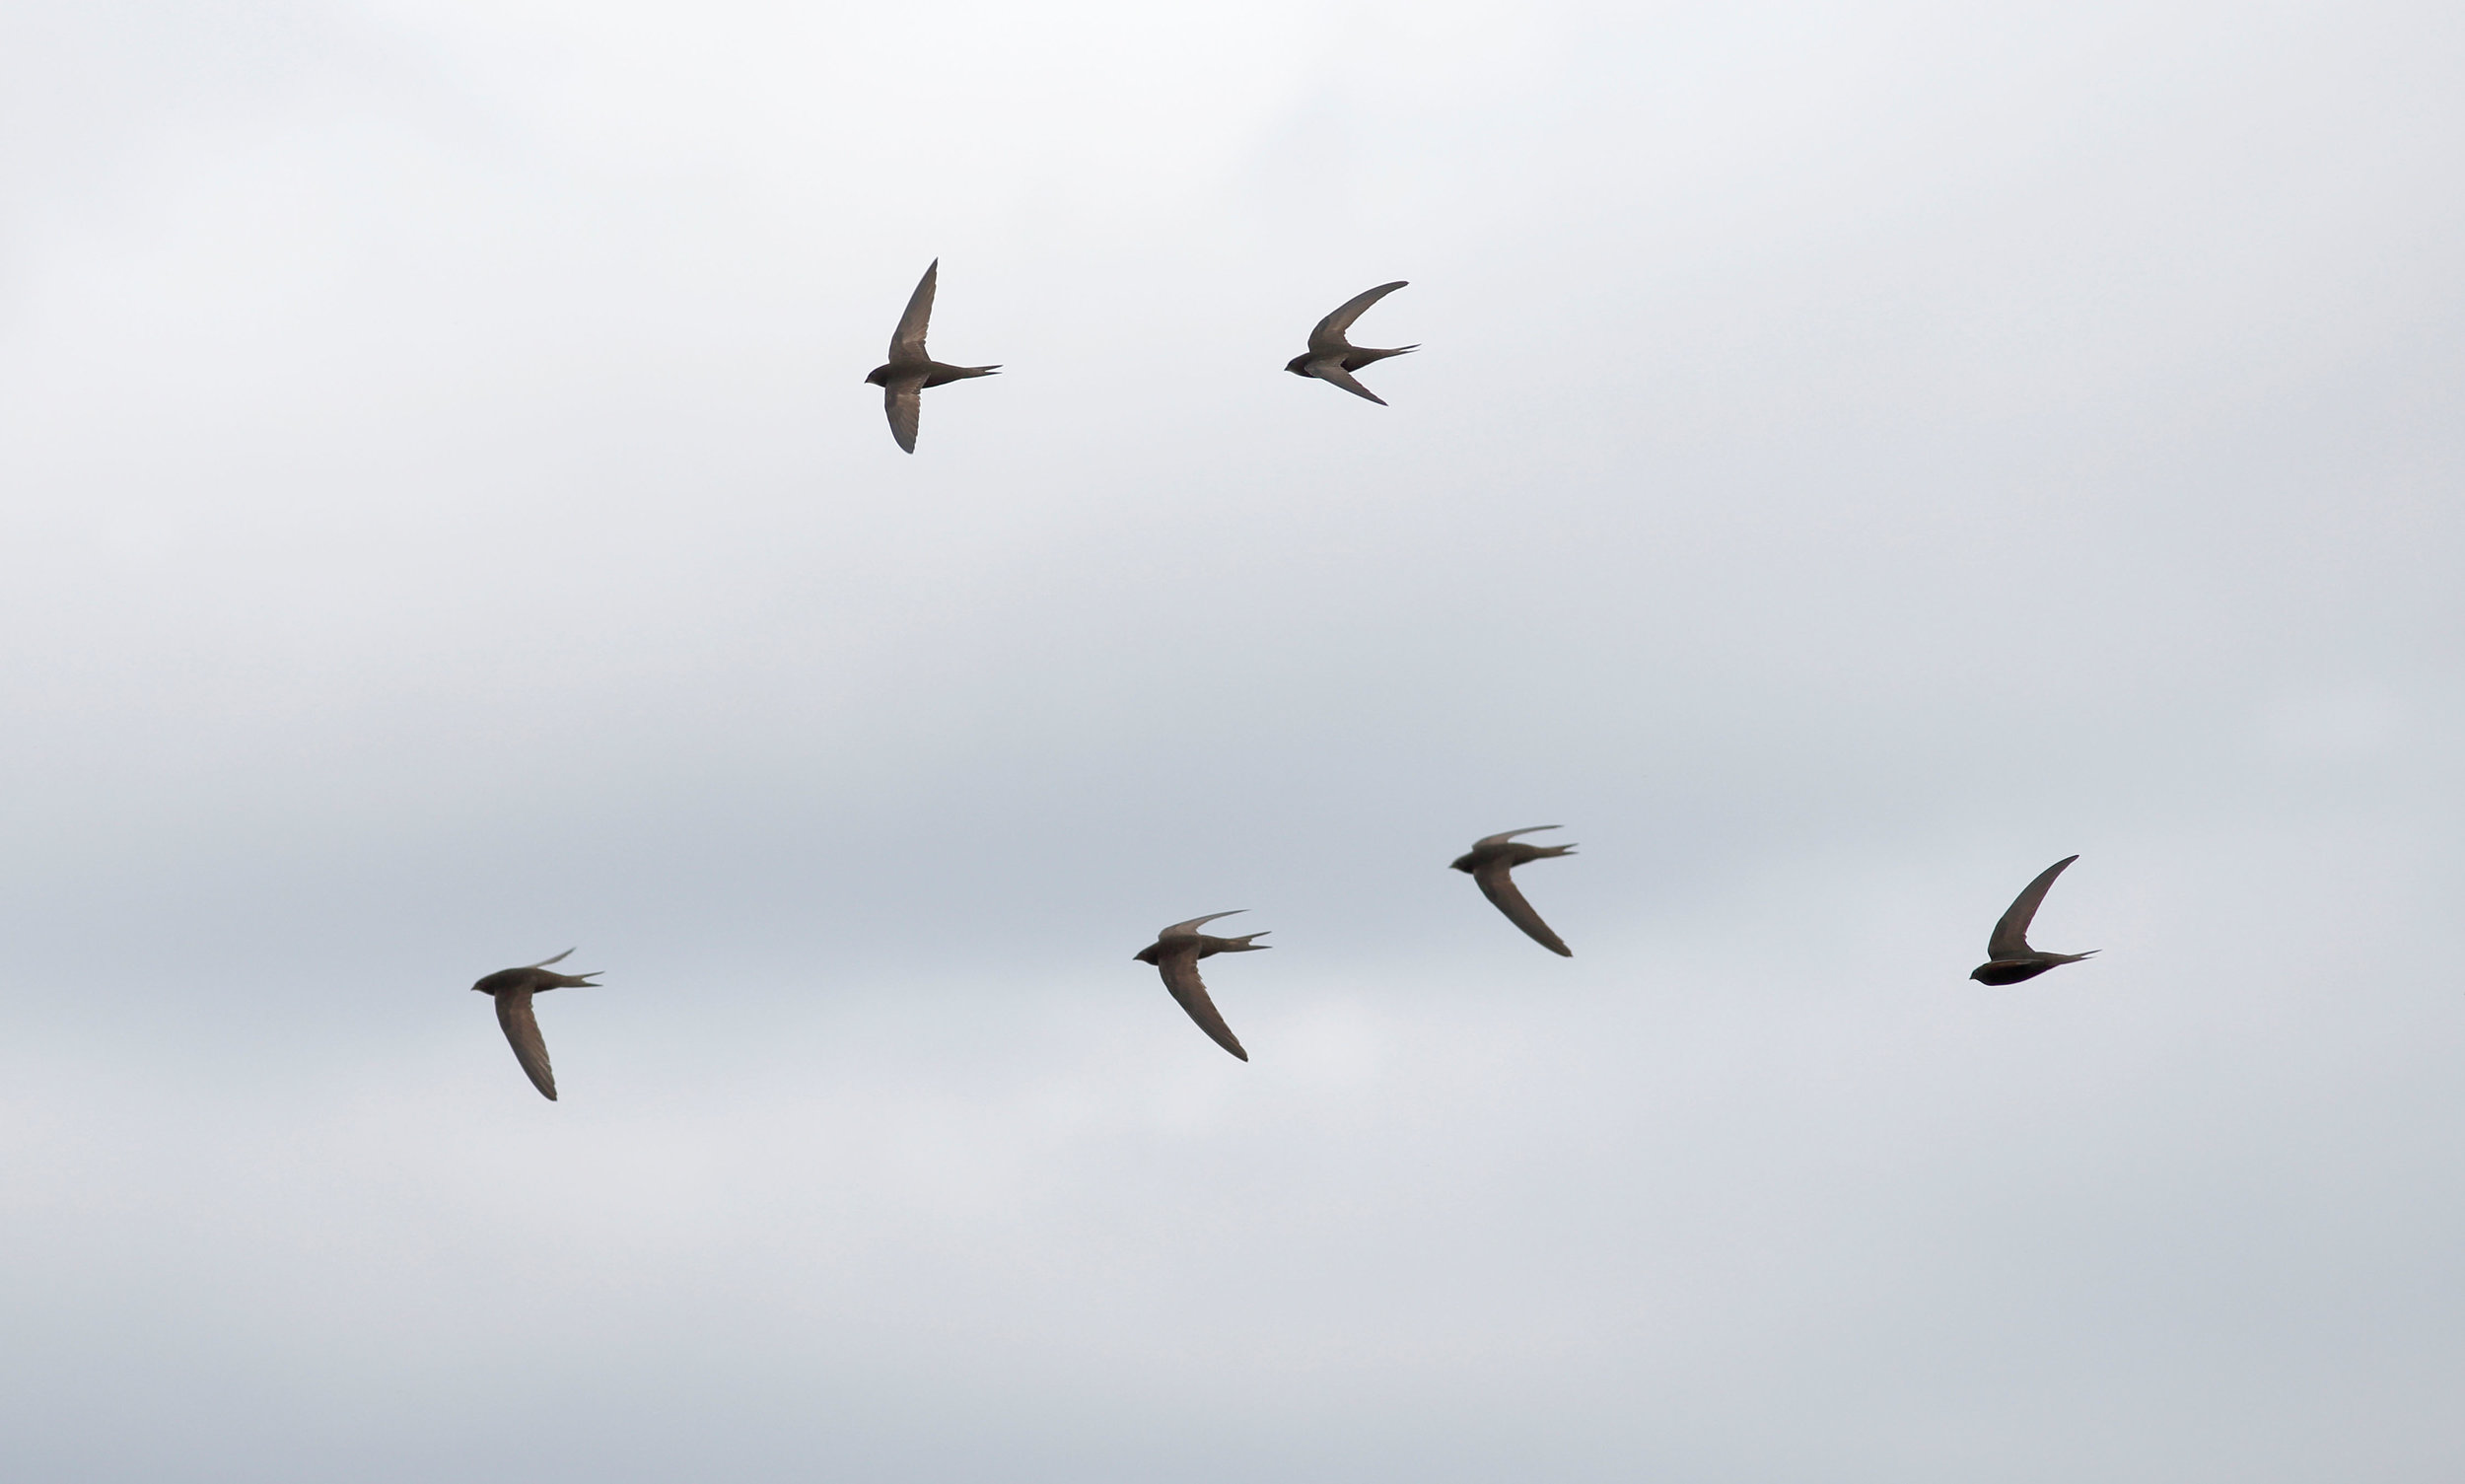 In later summer, Swifts form screaming flocks